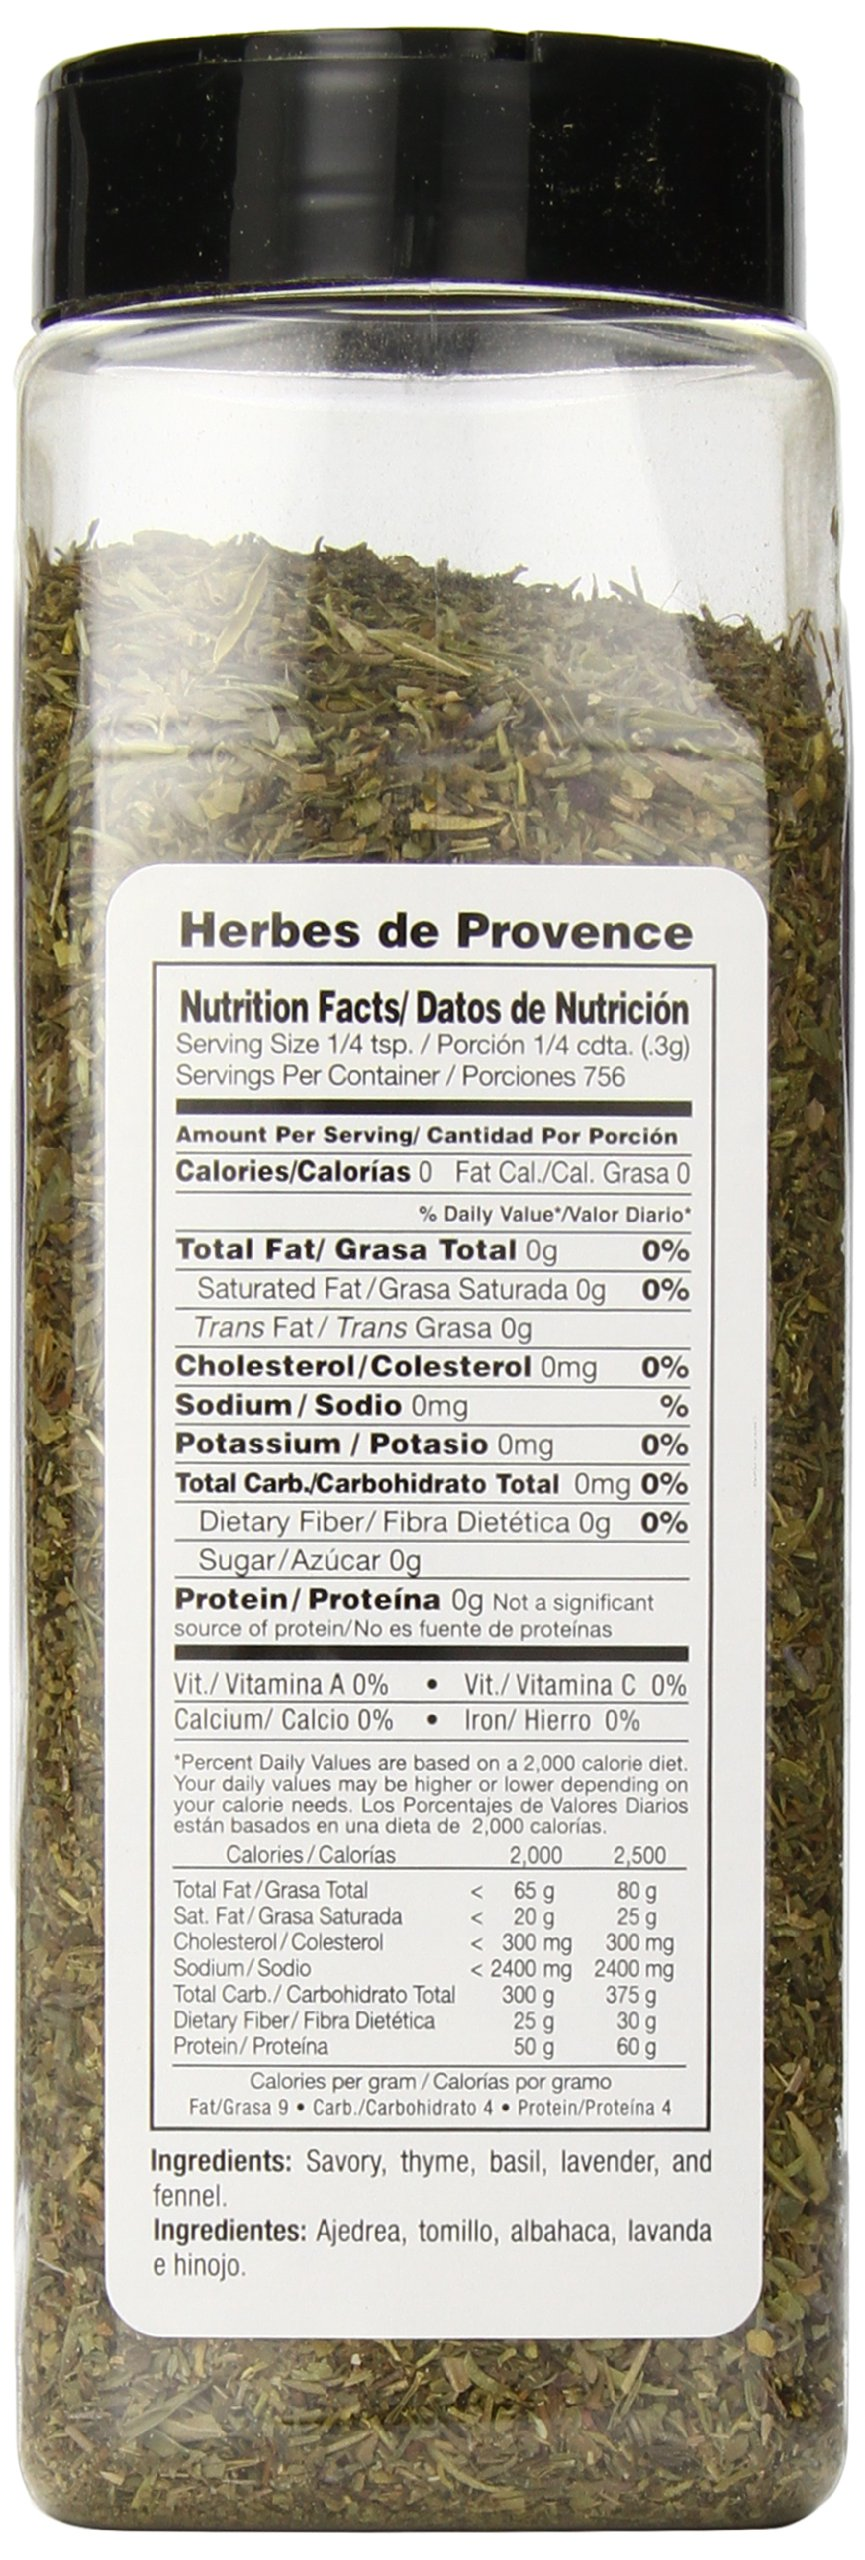 Badia Herbs De Provence, 8 Ounce (Pack of 6) by Badia (Image #4)